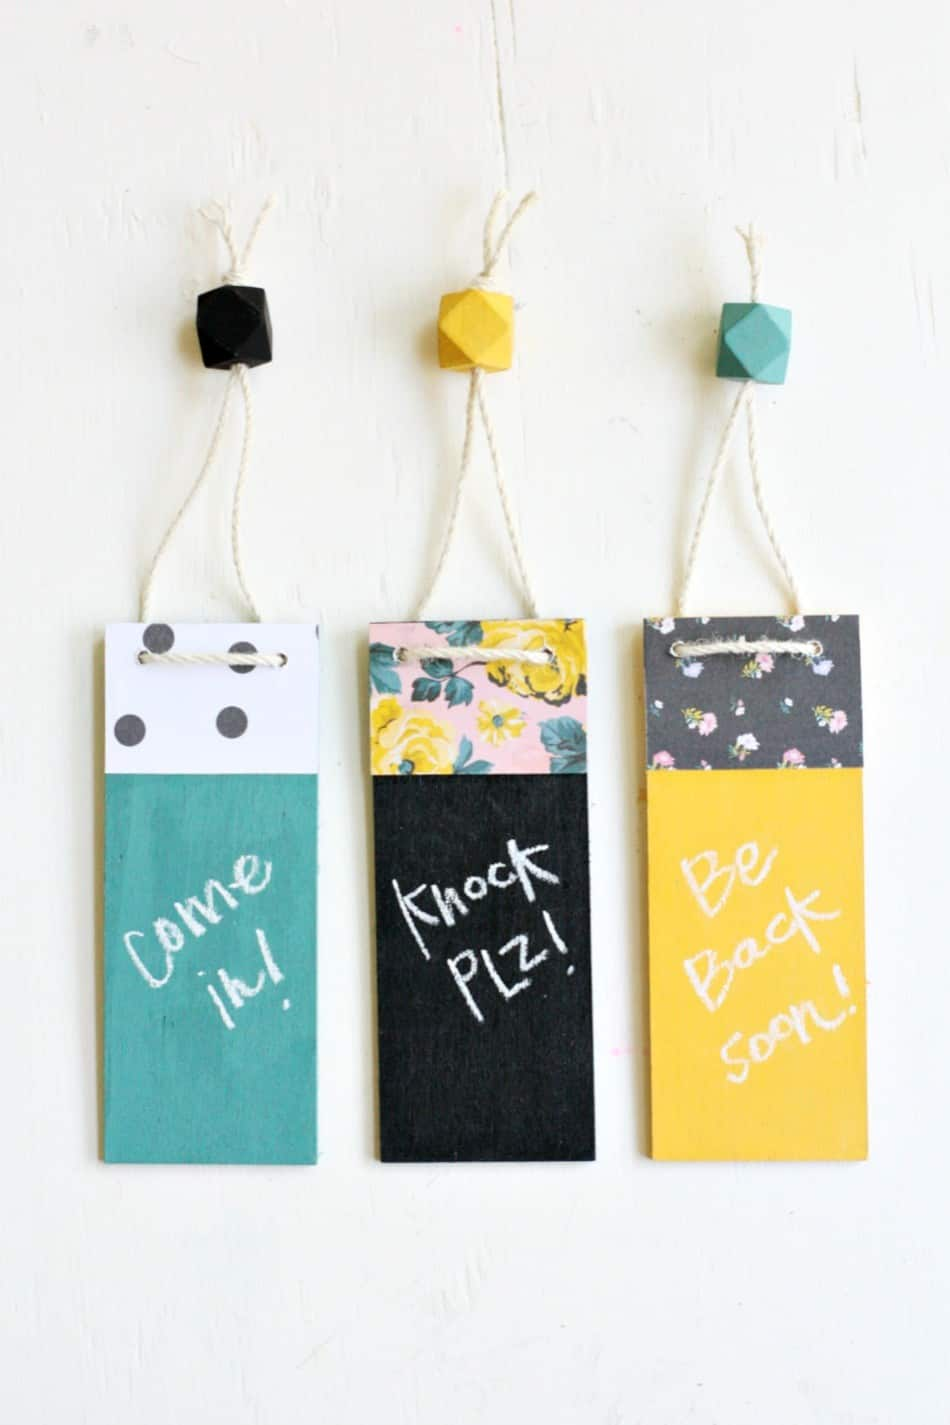 DIY Door Hangers with a Writable Chalkboard Surface